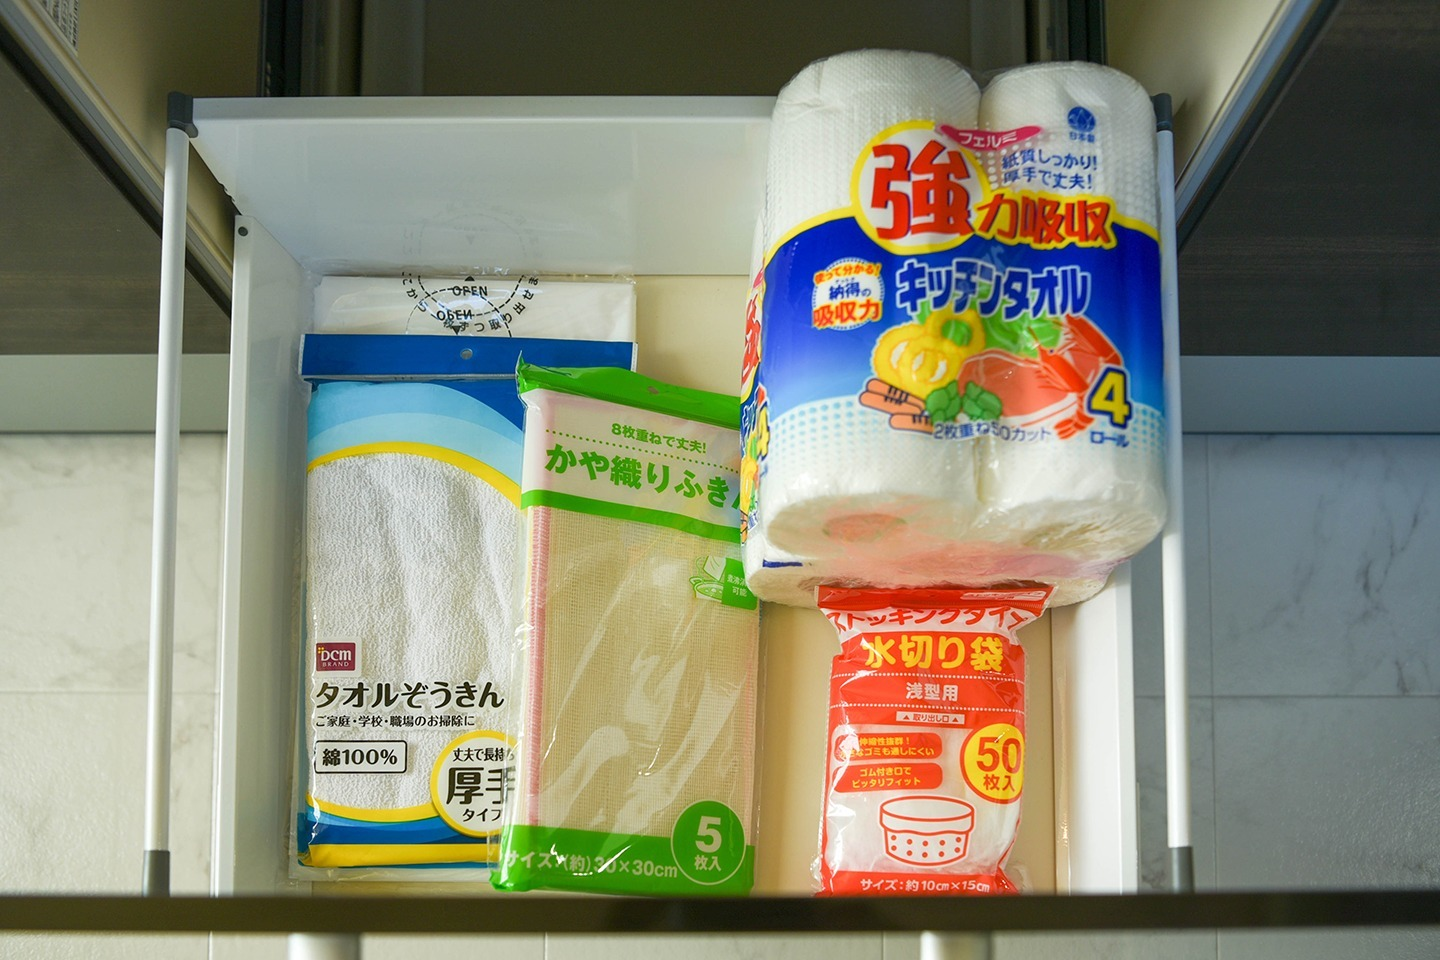 Cleaning cloth and other kitchen utensils are in the drawer 引き出しの中に雑巾や台所用品があります